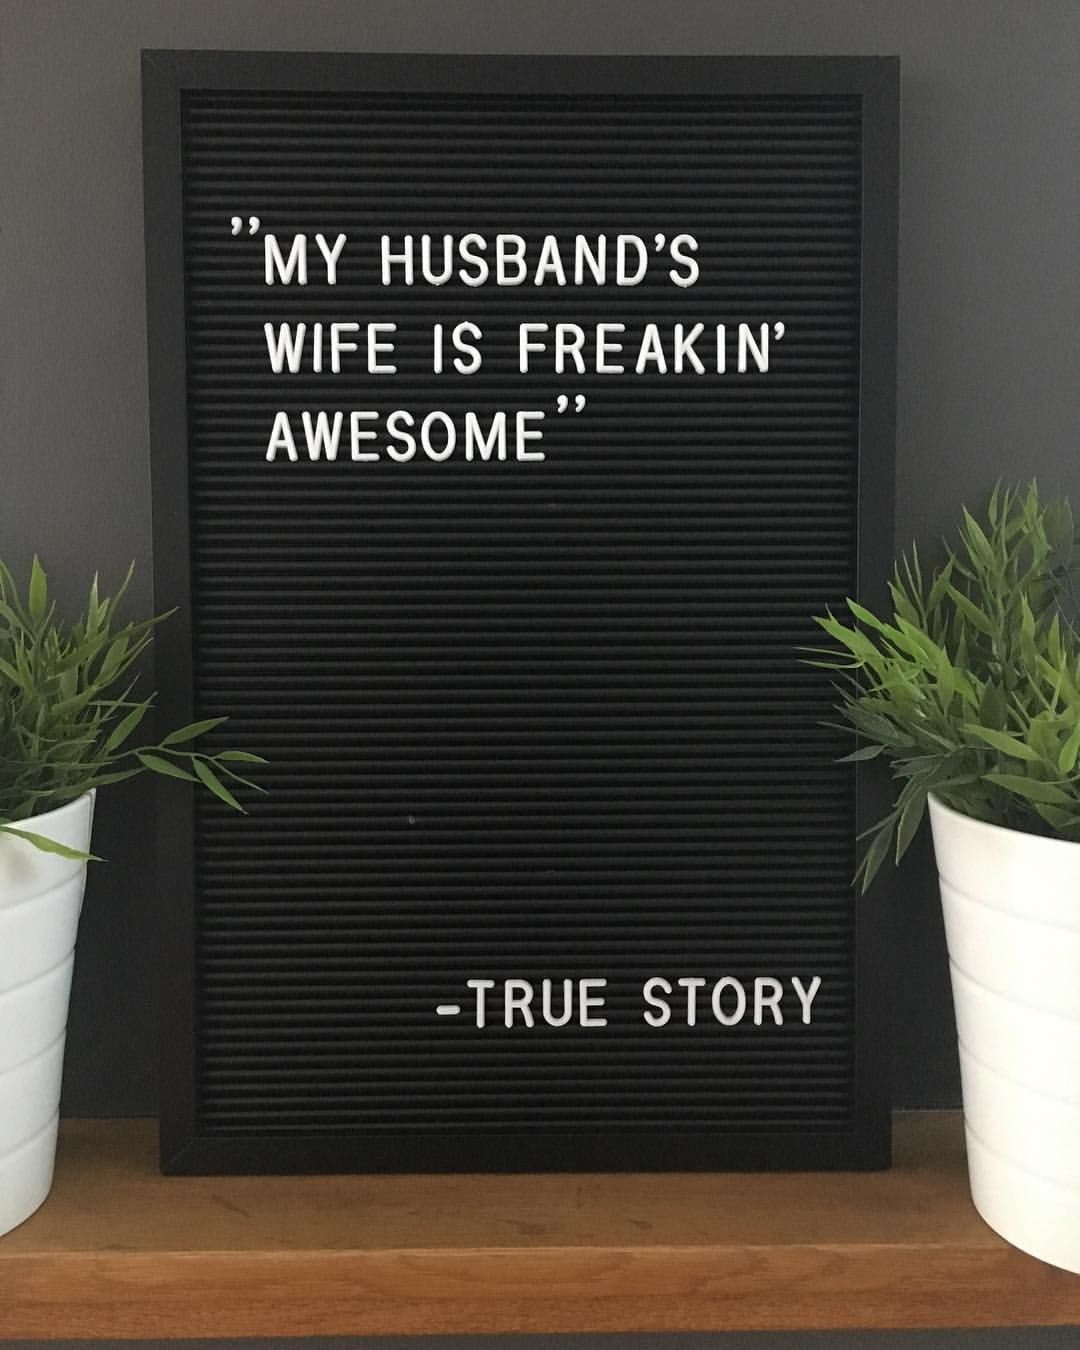 Marriage Husband Wife Awesome Marriagequotes Quote Quotes Letterbox Letterboxquotes Letterboard Lette Message Board Quotes Funny Quotes Letter Board